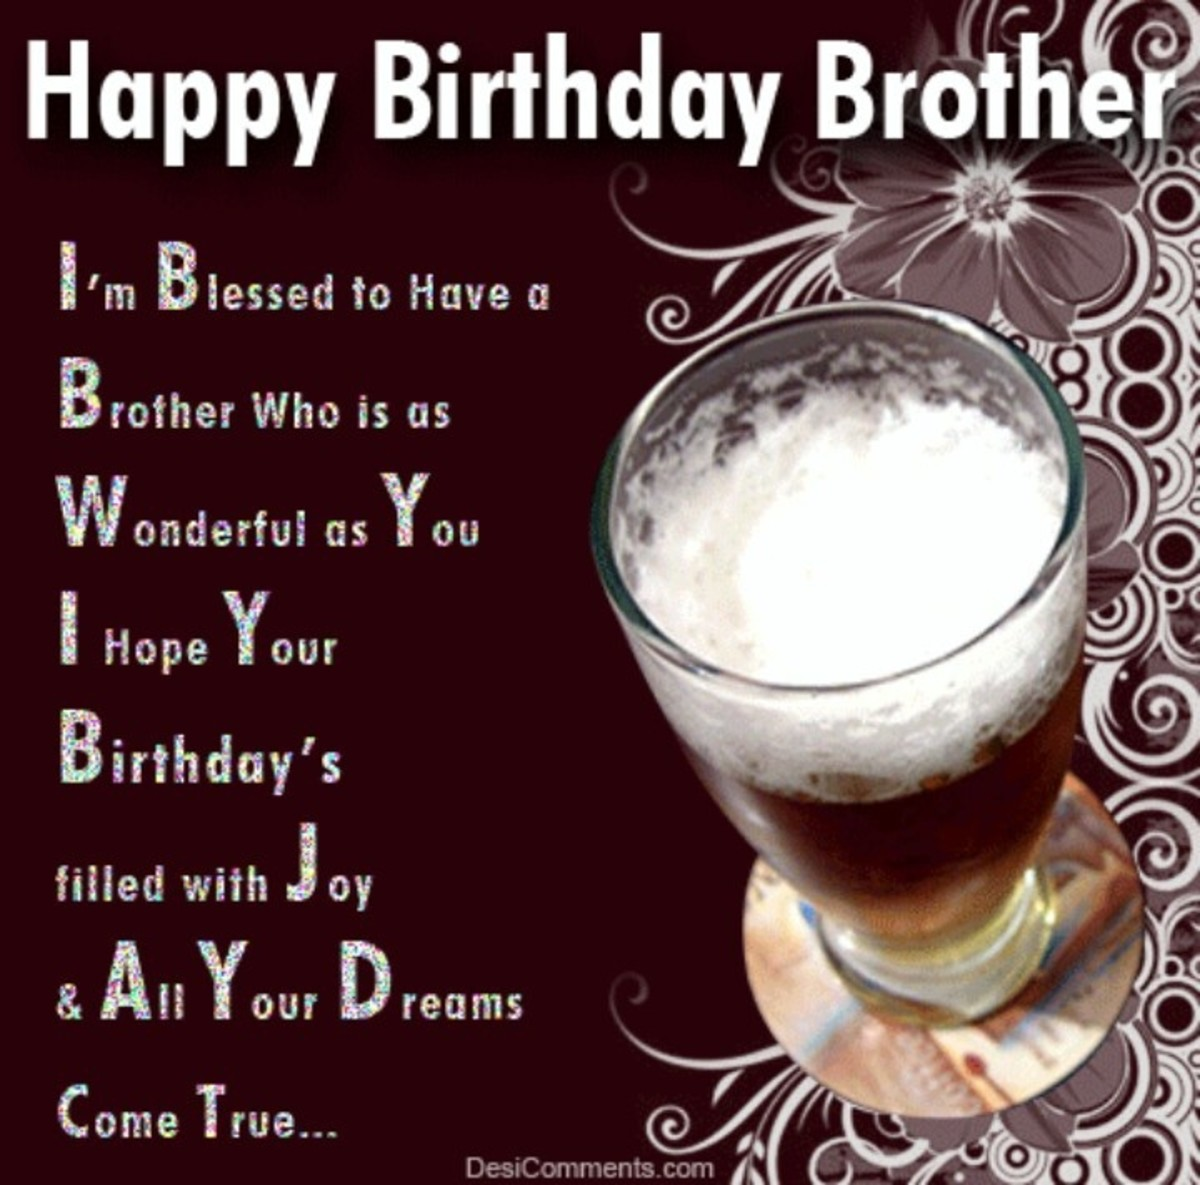 Birthday Wishes Cards And Quotes For Your Brother Hubpages Happy Birthday Wishes For Siblings